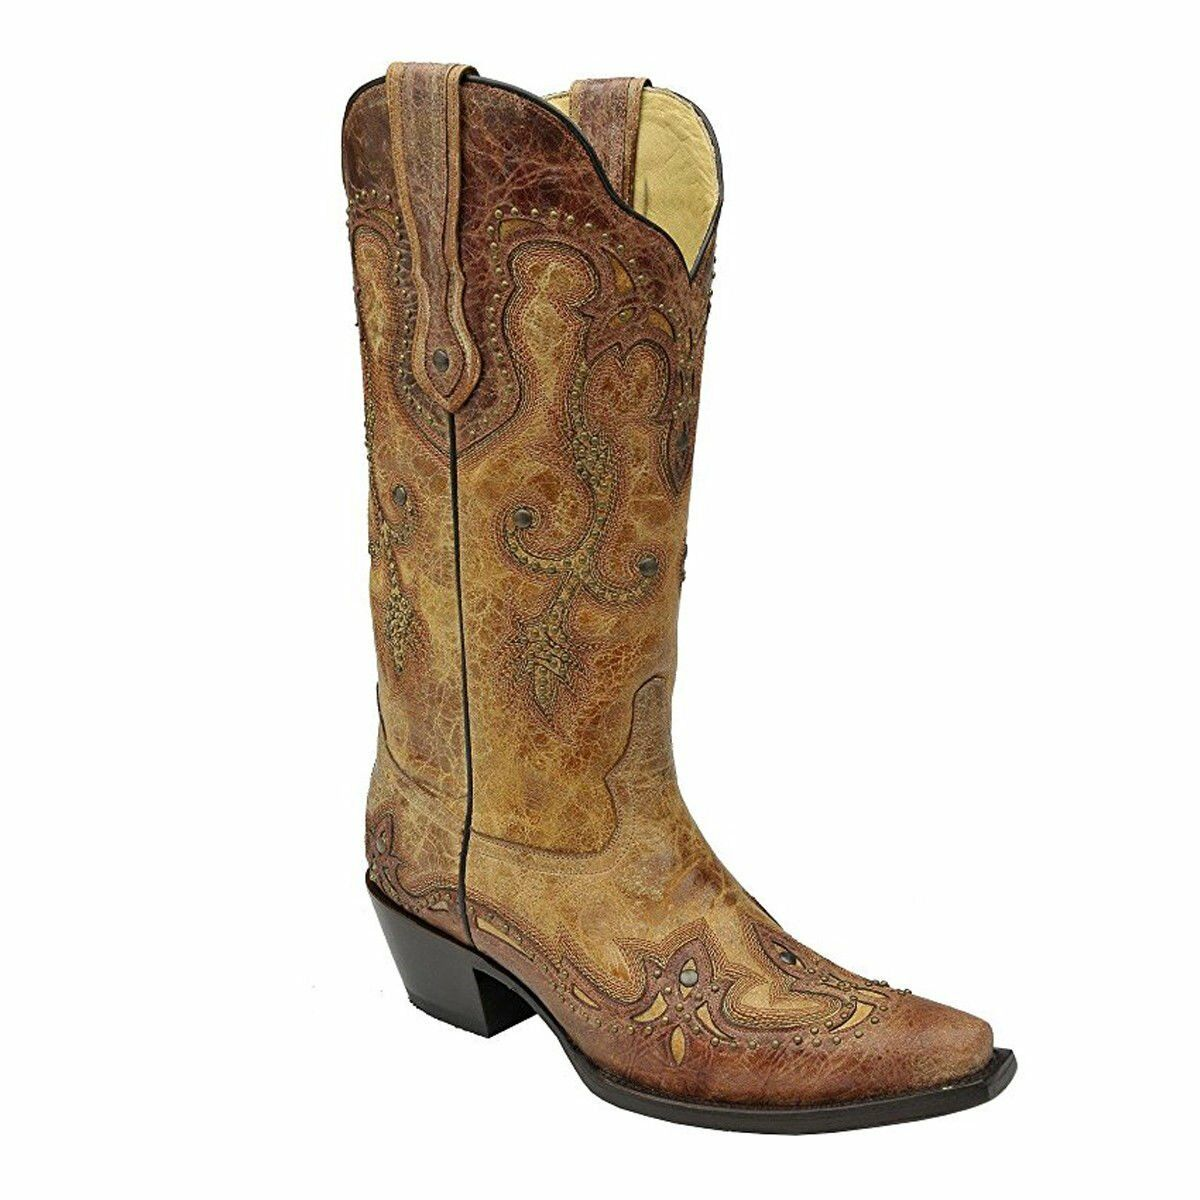 CORRAL Women's Cognac Antique Saddle Cowgirl Boot Snip Toe - G1201